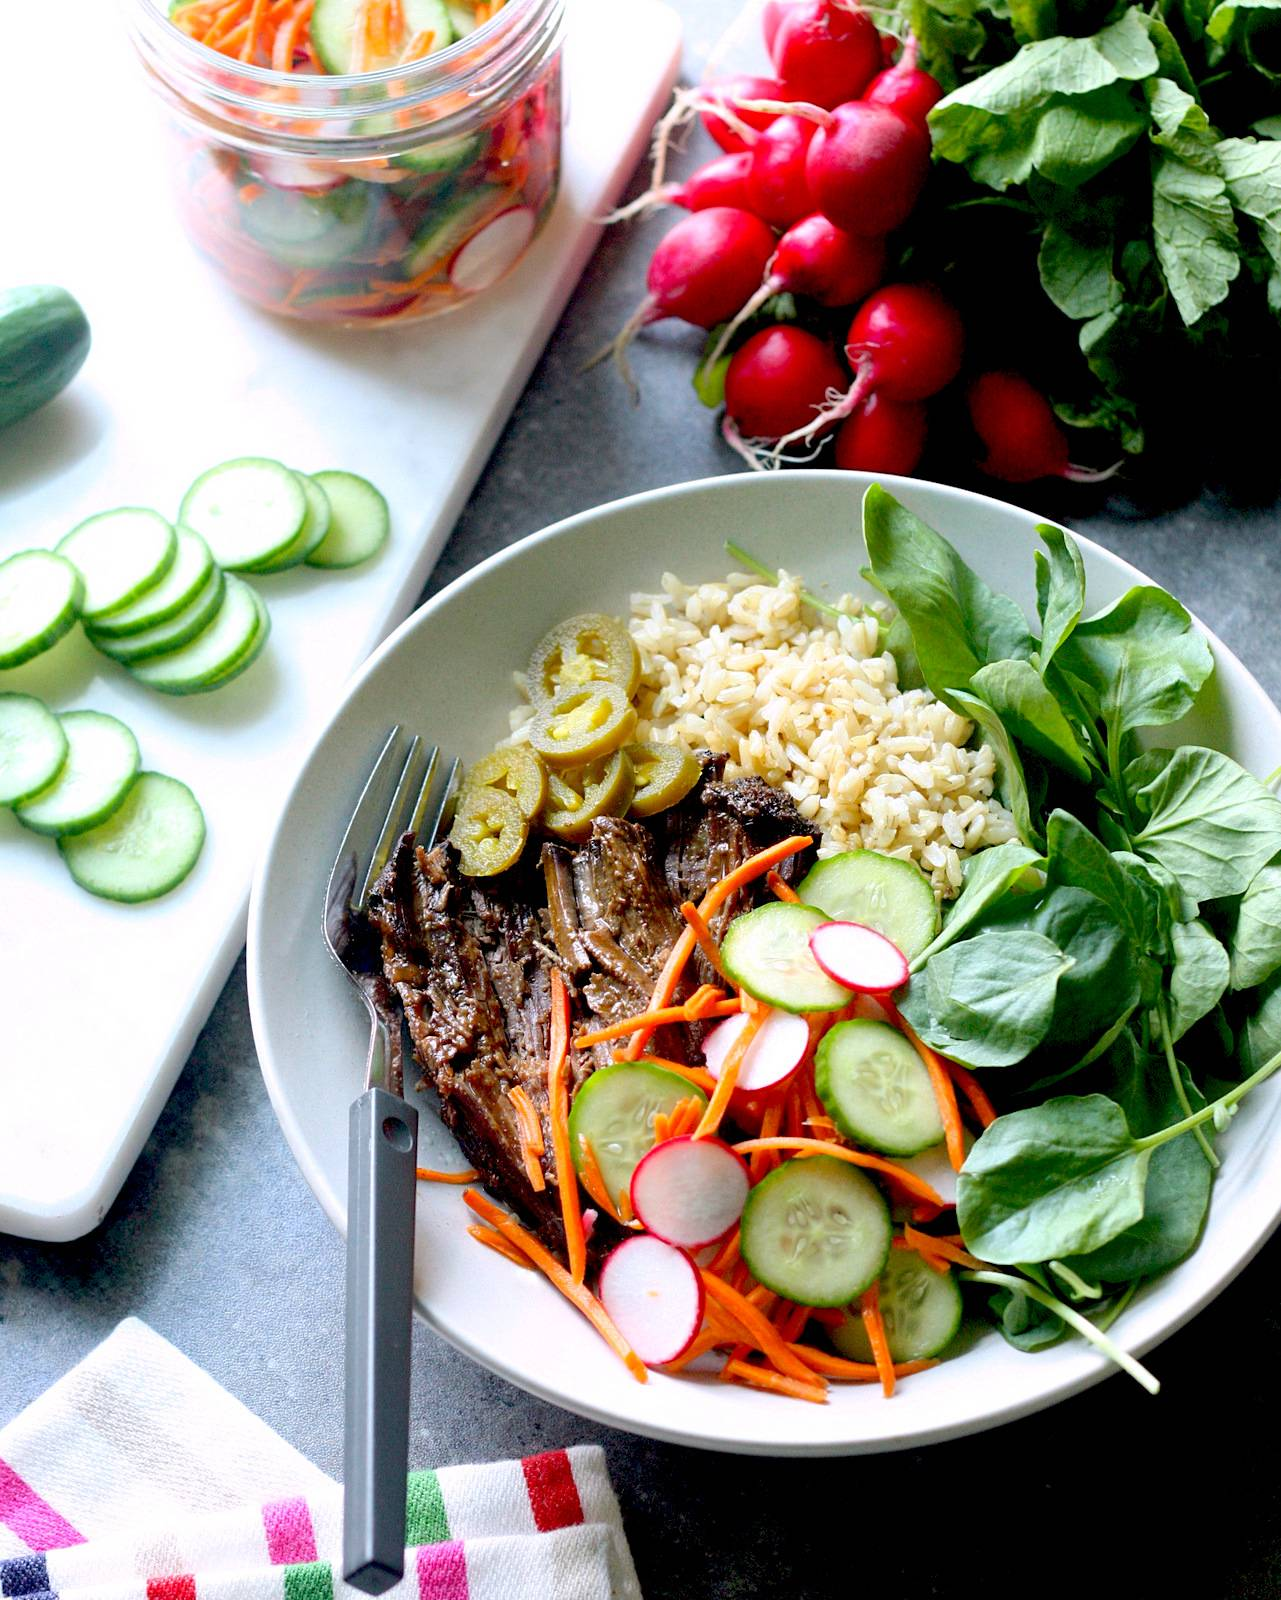 A tabletop display featuring a bowl with rice, greens and slow cooker beef roast with pickled vegetables, Banh Mi style.